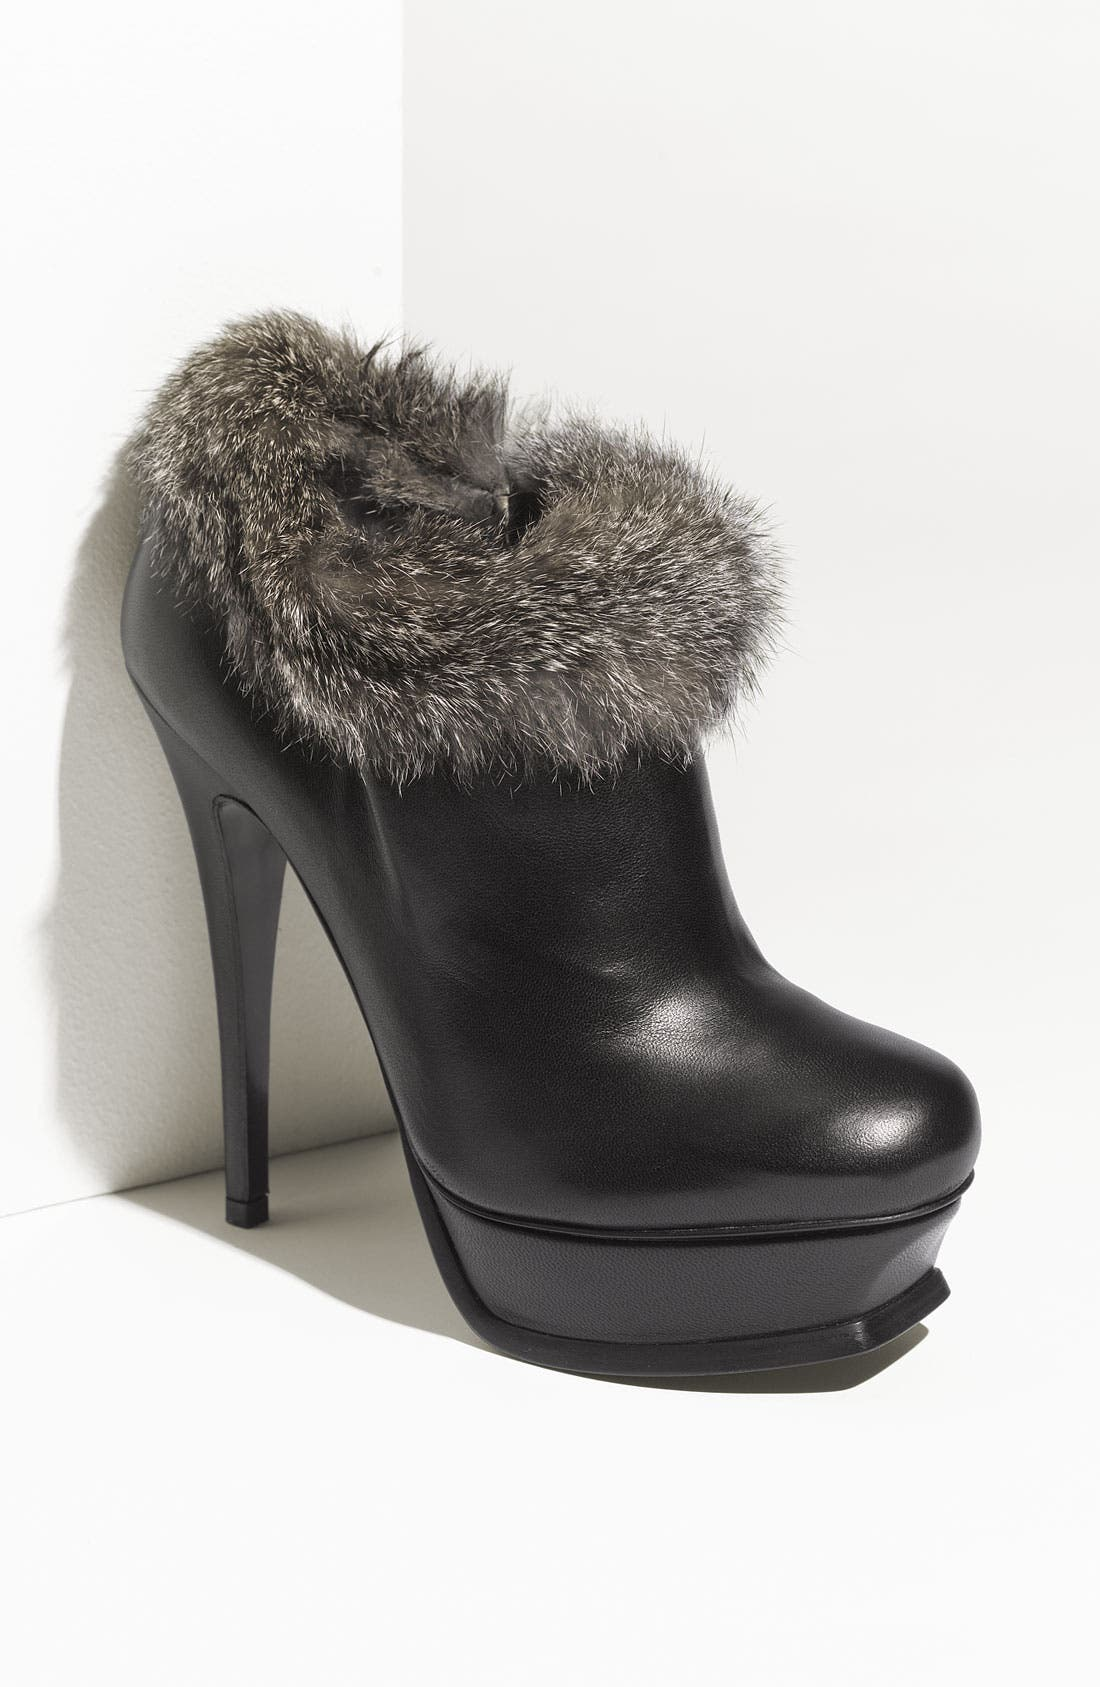 Main Image - Yves Saint Laurent 'Tribute' Genuine Rabbit Fur Trim Leather Bootie